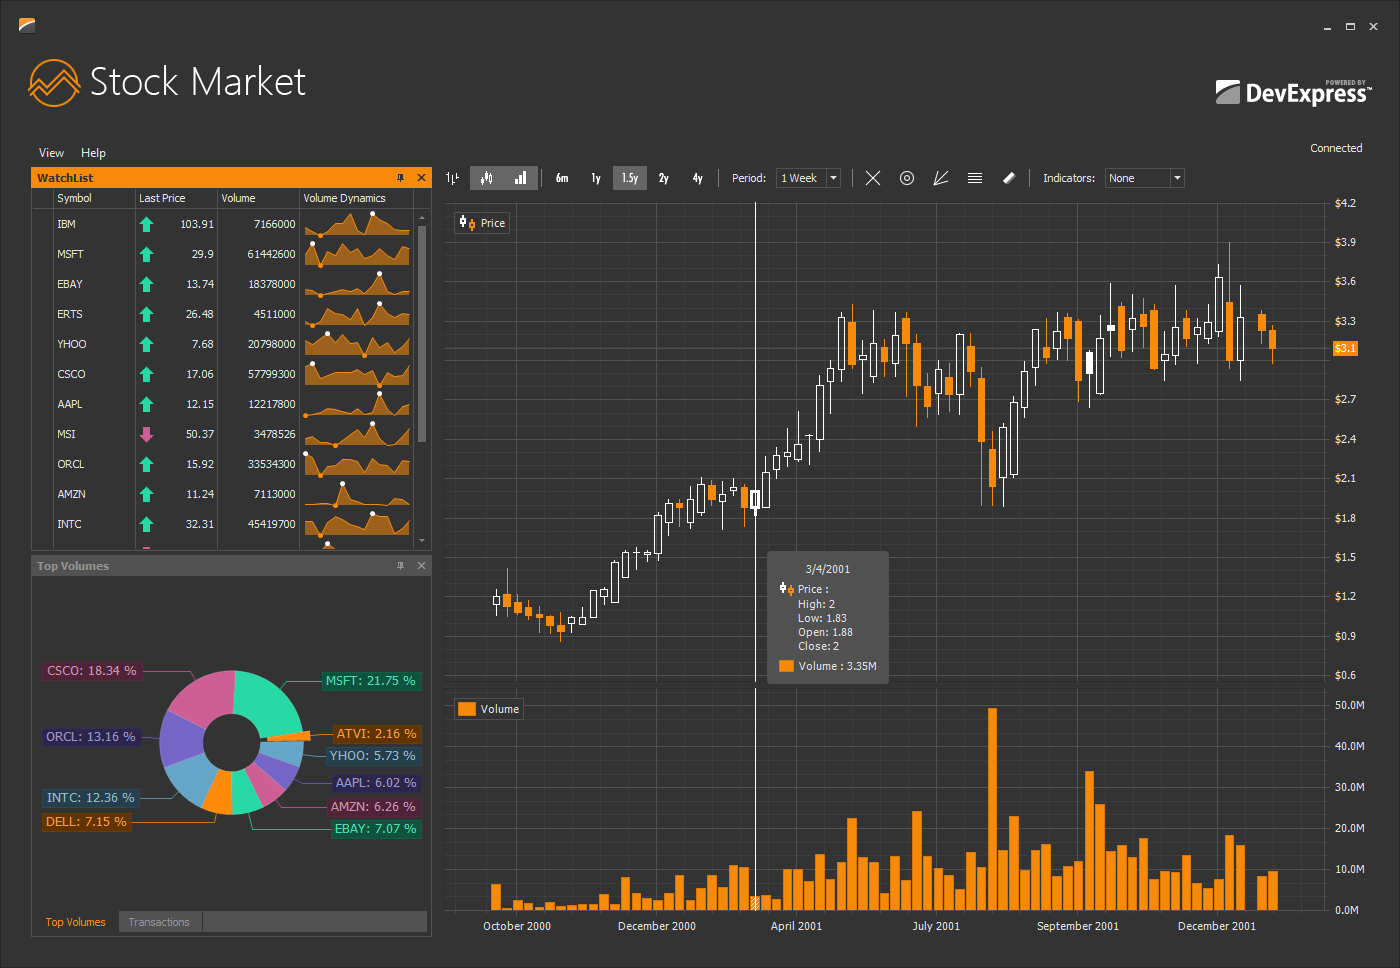 DevExpress WinForms Chart in Stock Market Application